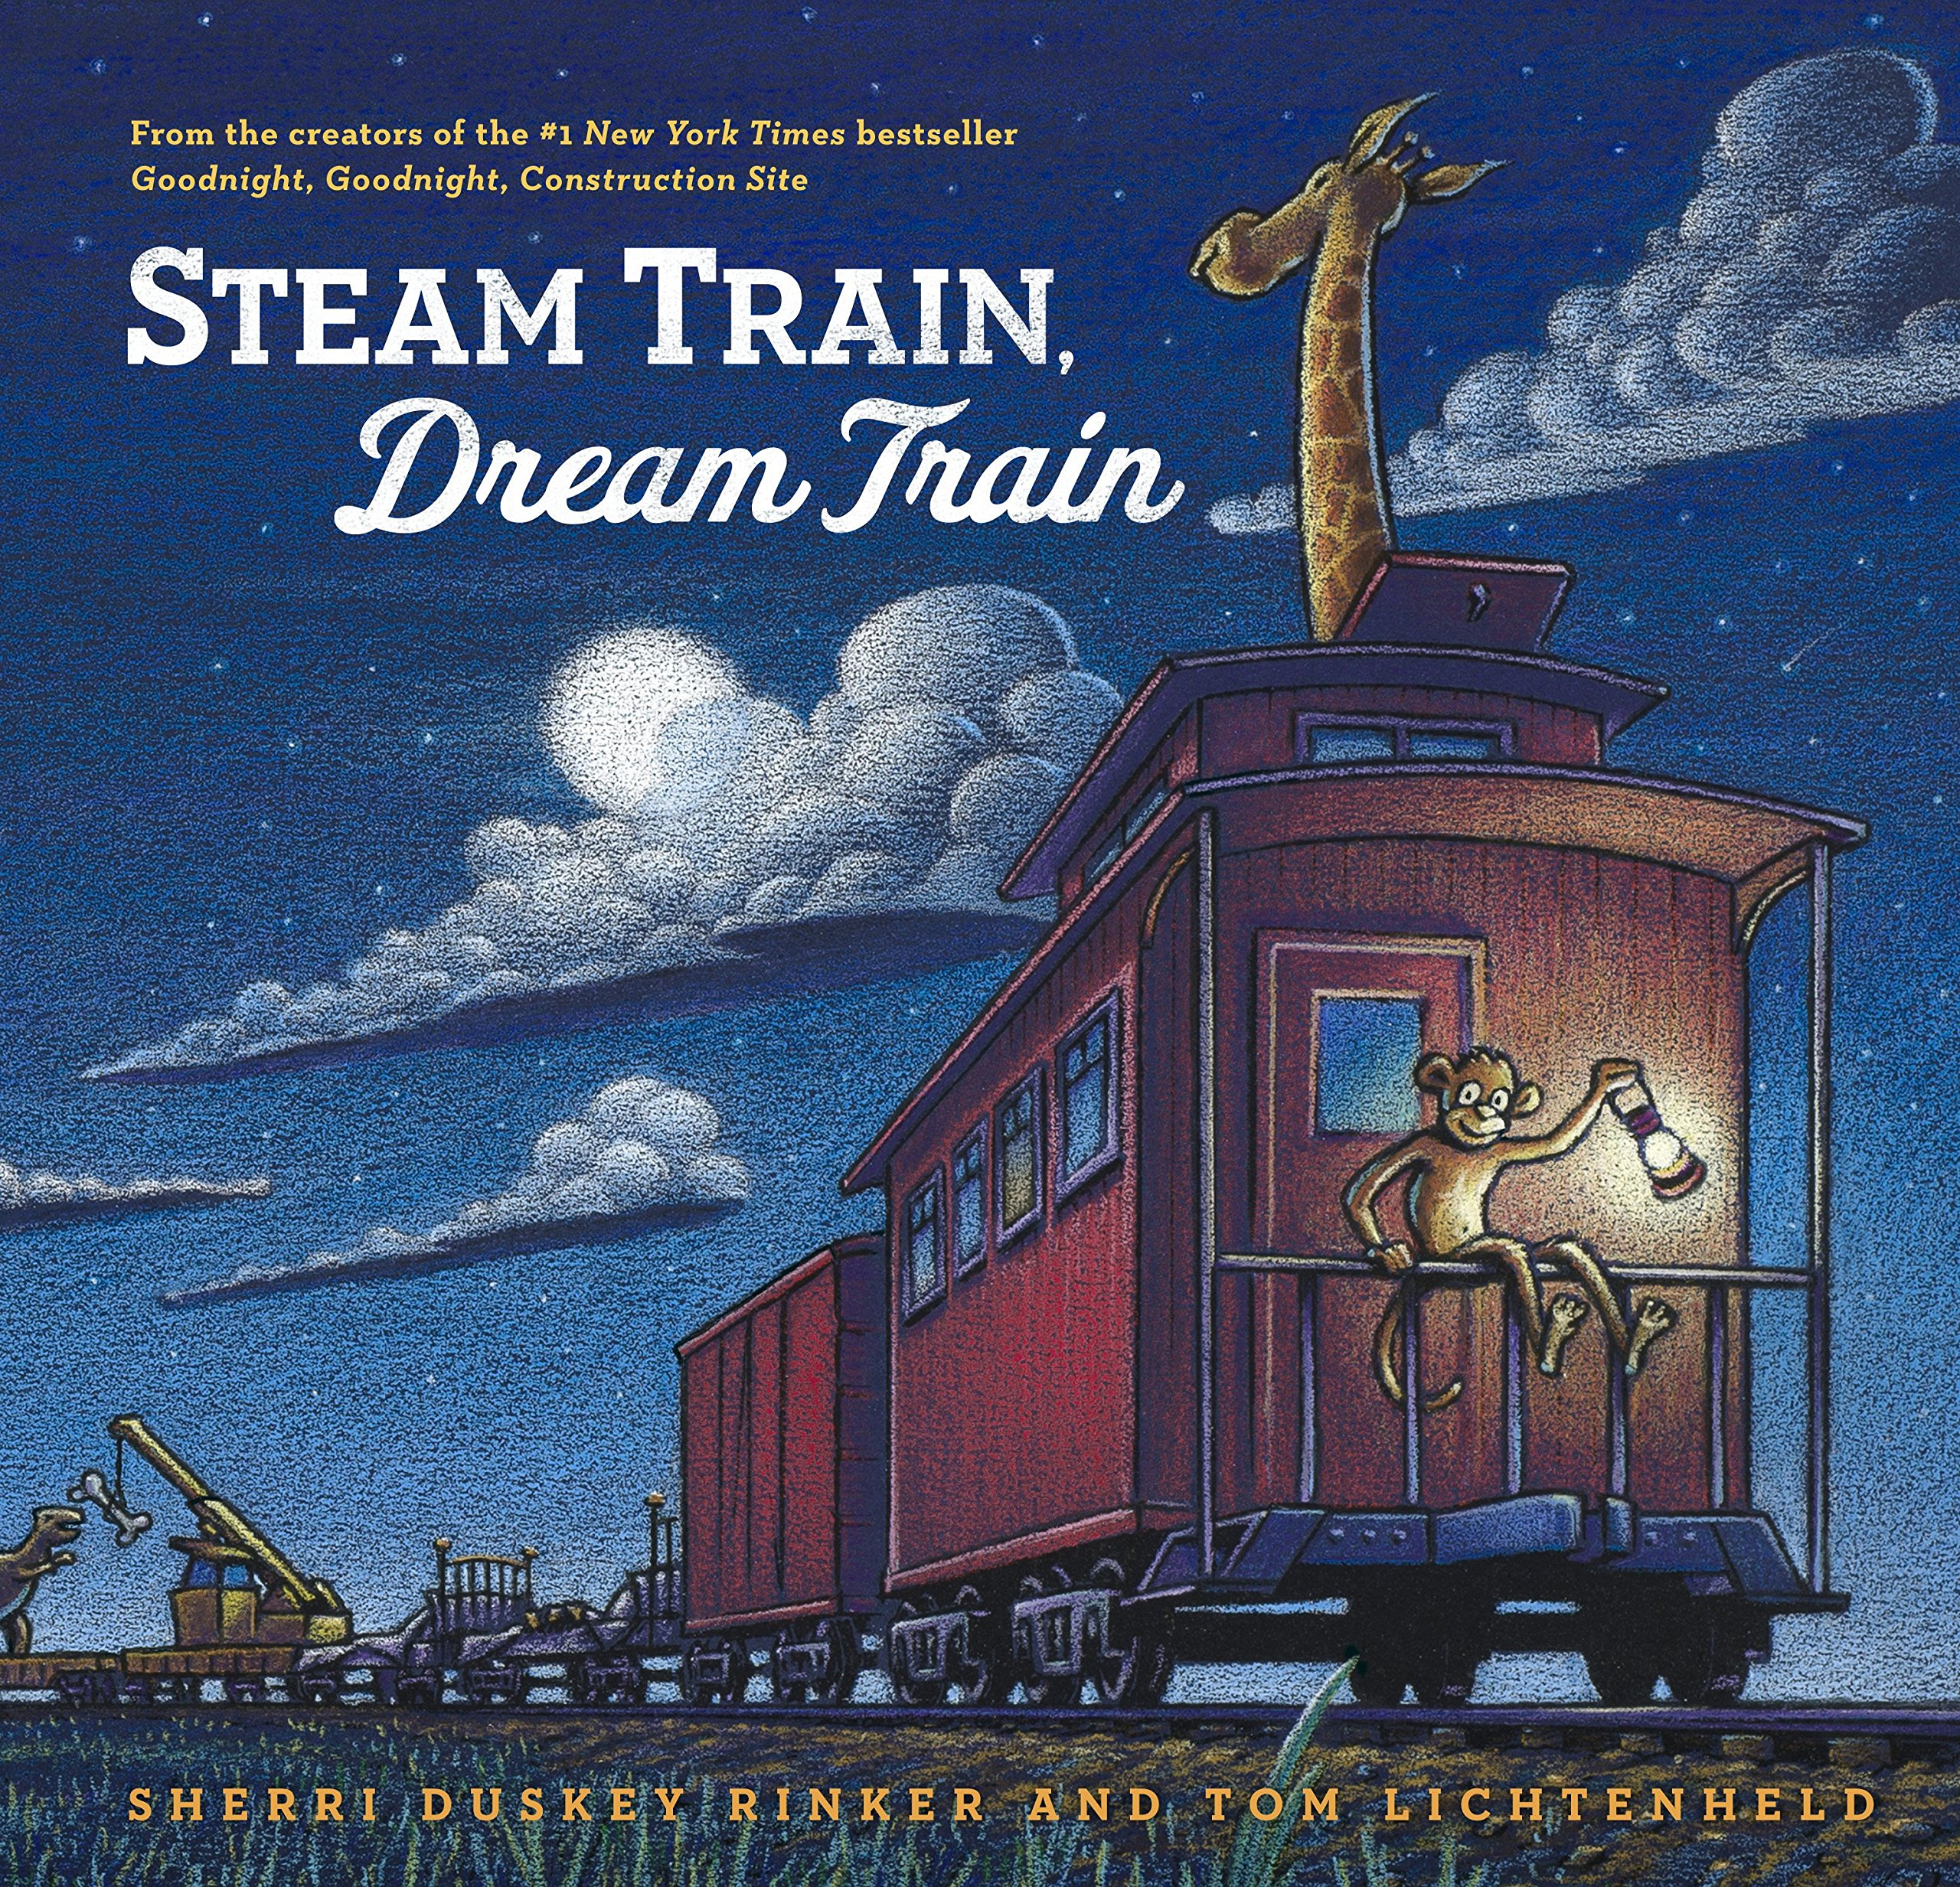 Steam Train, Dream Train by Hachette Book (Image #1)